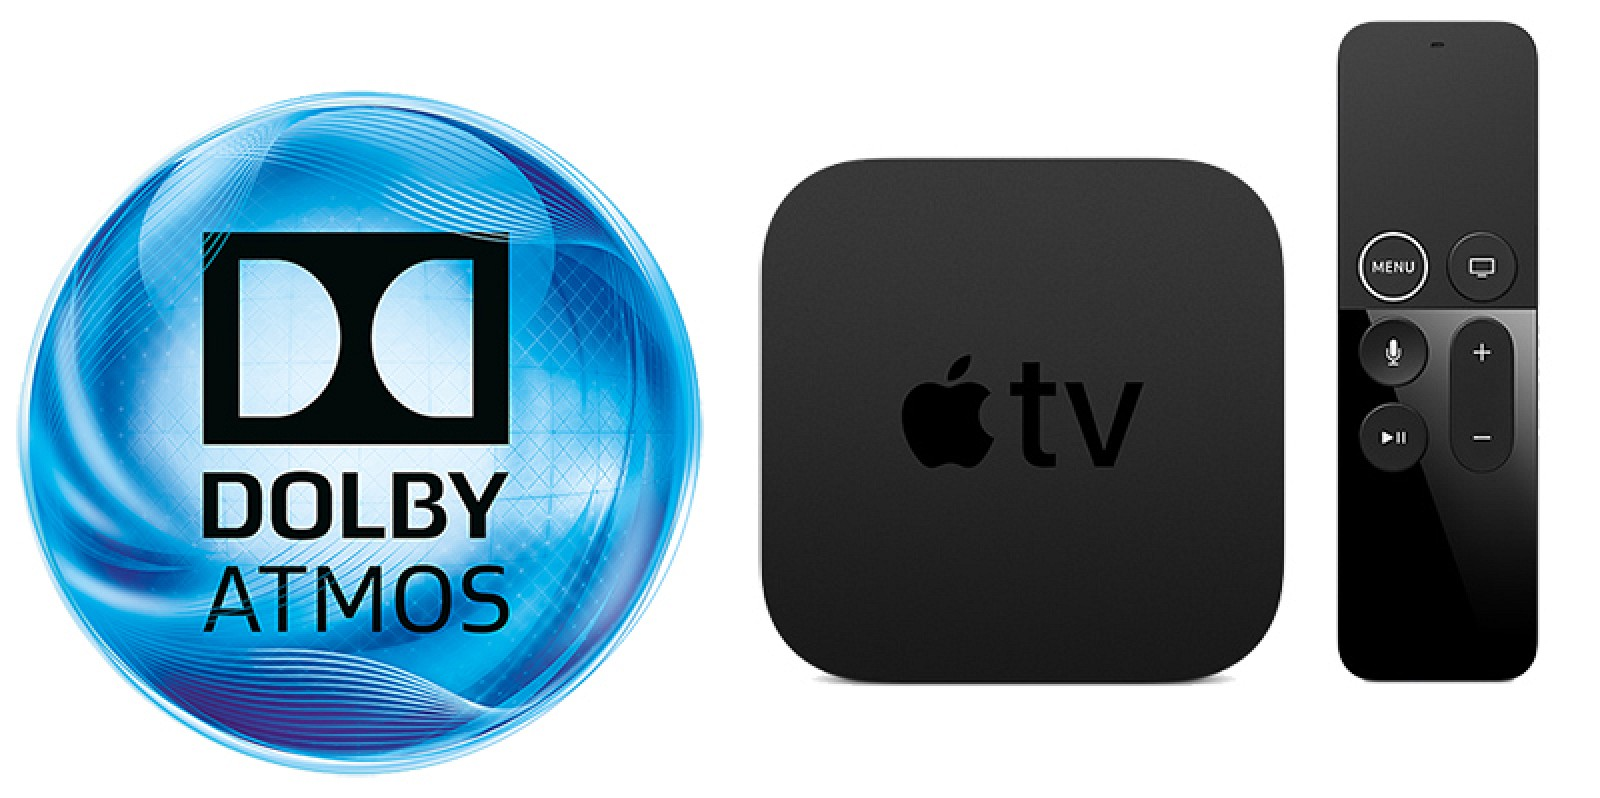 Apple Suggests Apple TV 4K Will Gain Dolby Atmos Support in Future tvOS Update